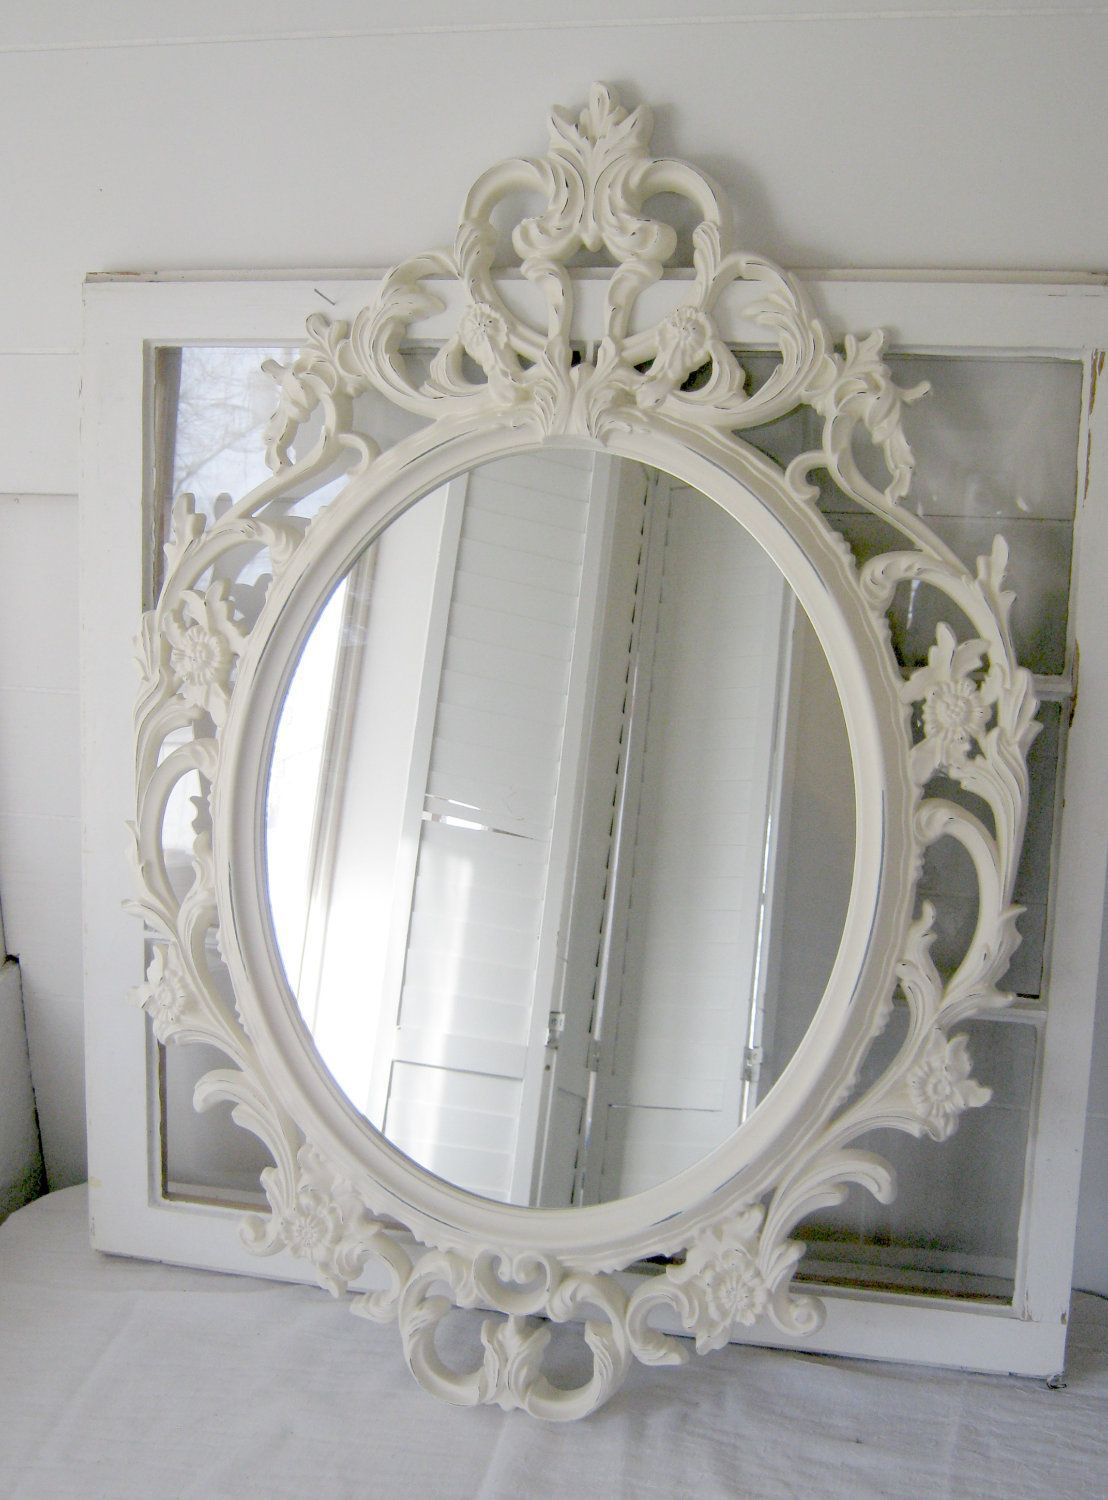 Shabby Chic Baroque Oval Mirror   Antique White   Ornate Mirror   Home Decor    Wedding